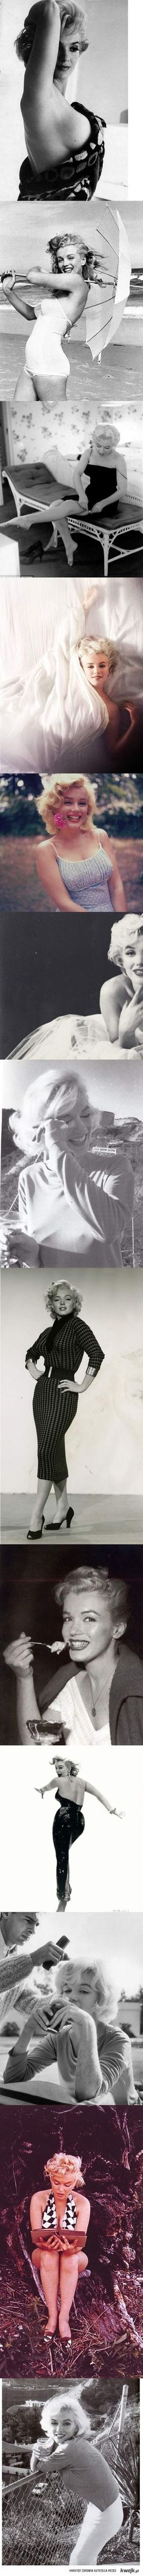 Marilyn.  She was just so gorgeous.